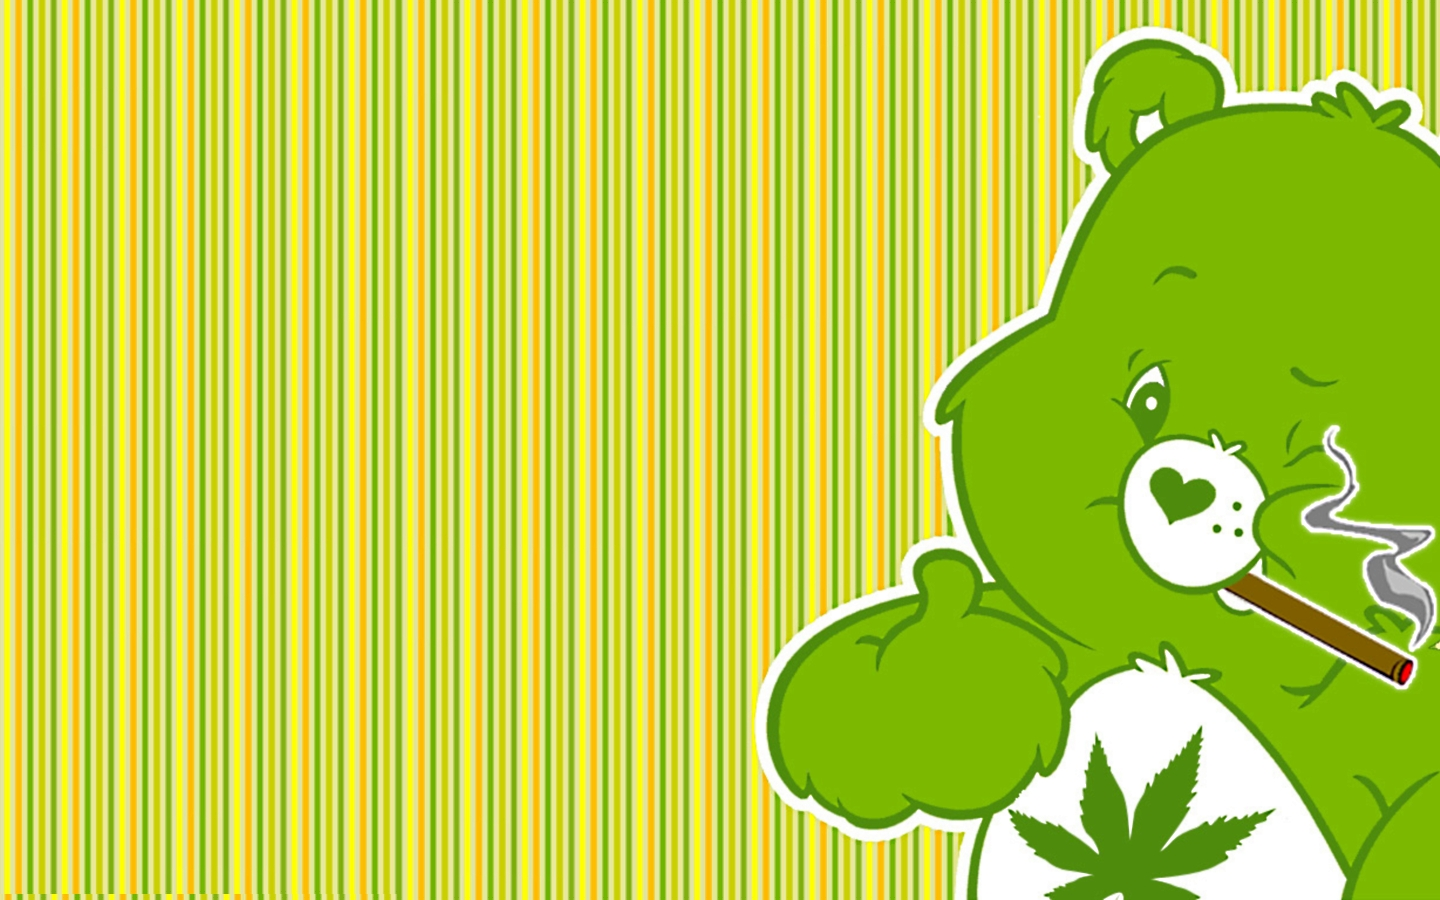 pot bear wallpaper.jpg